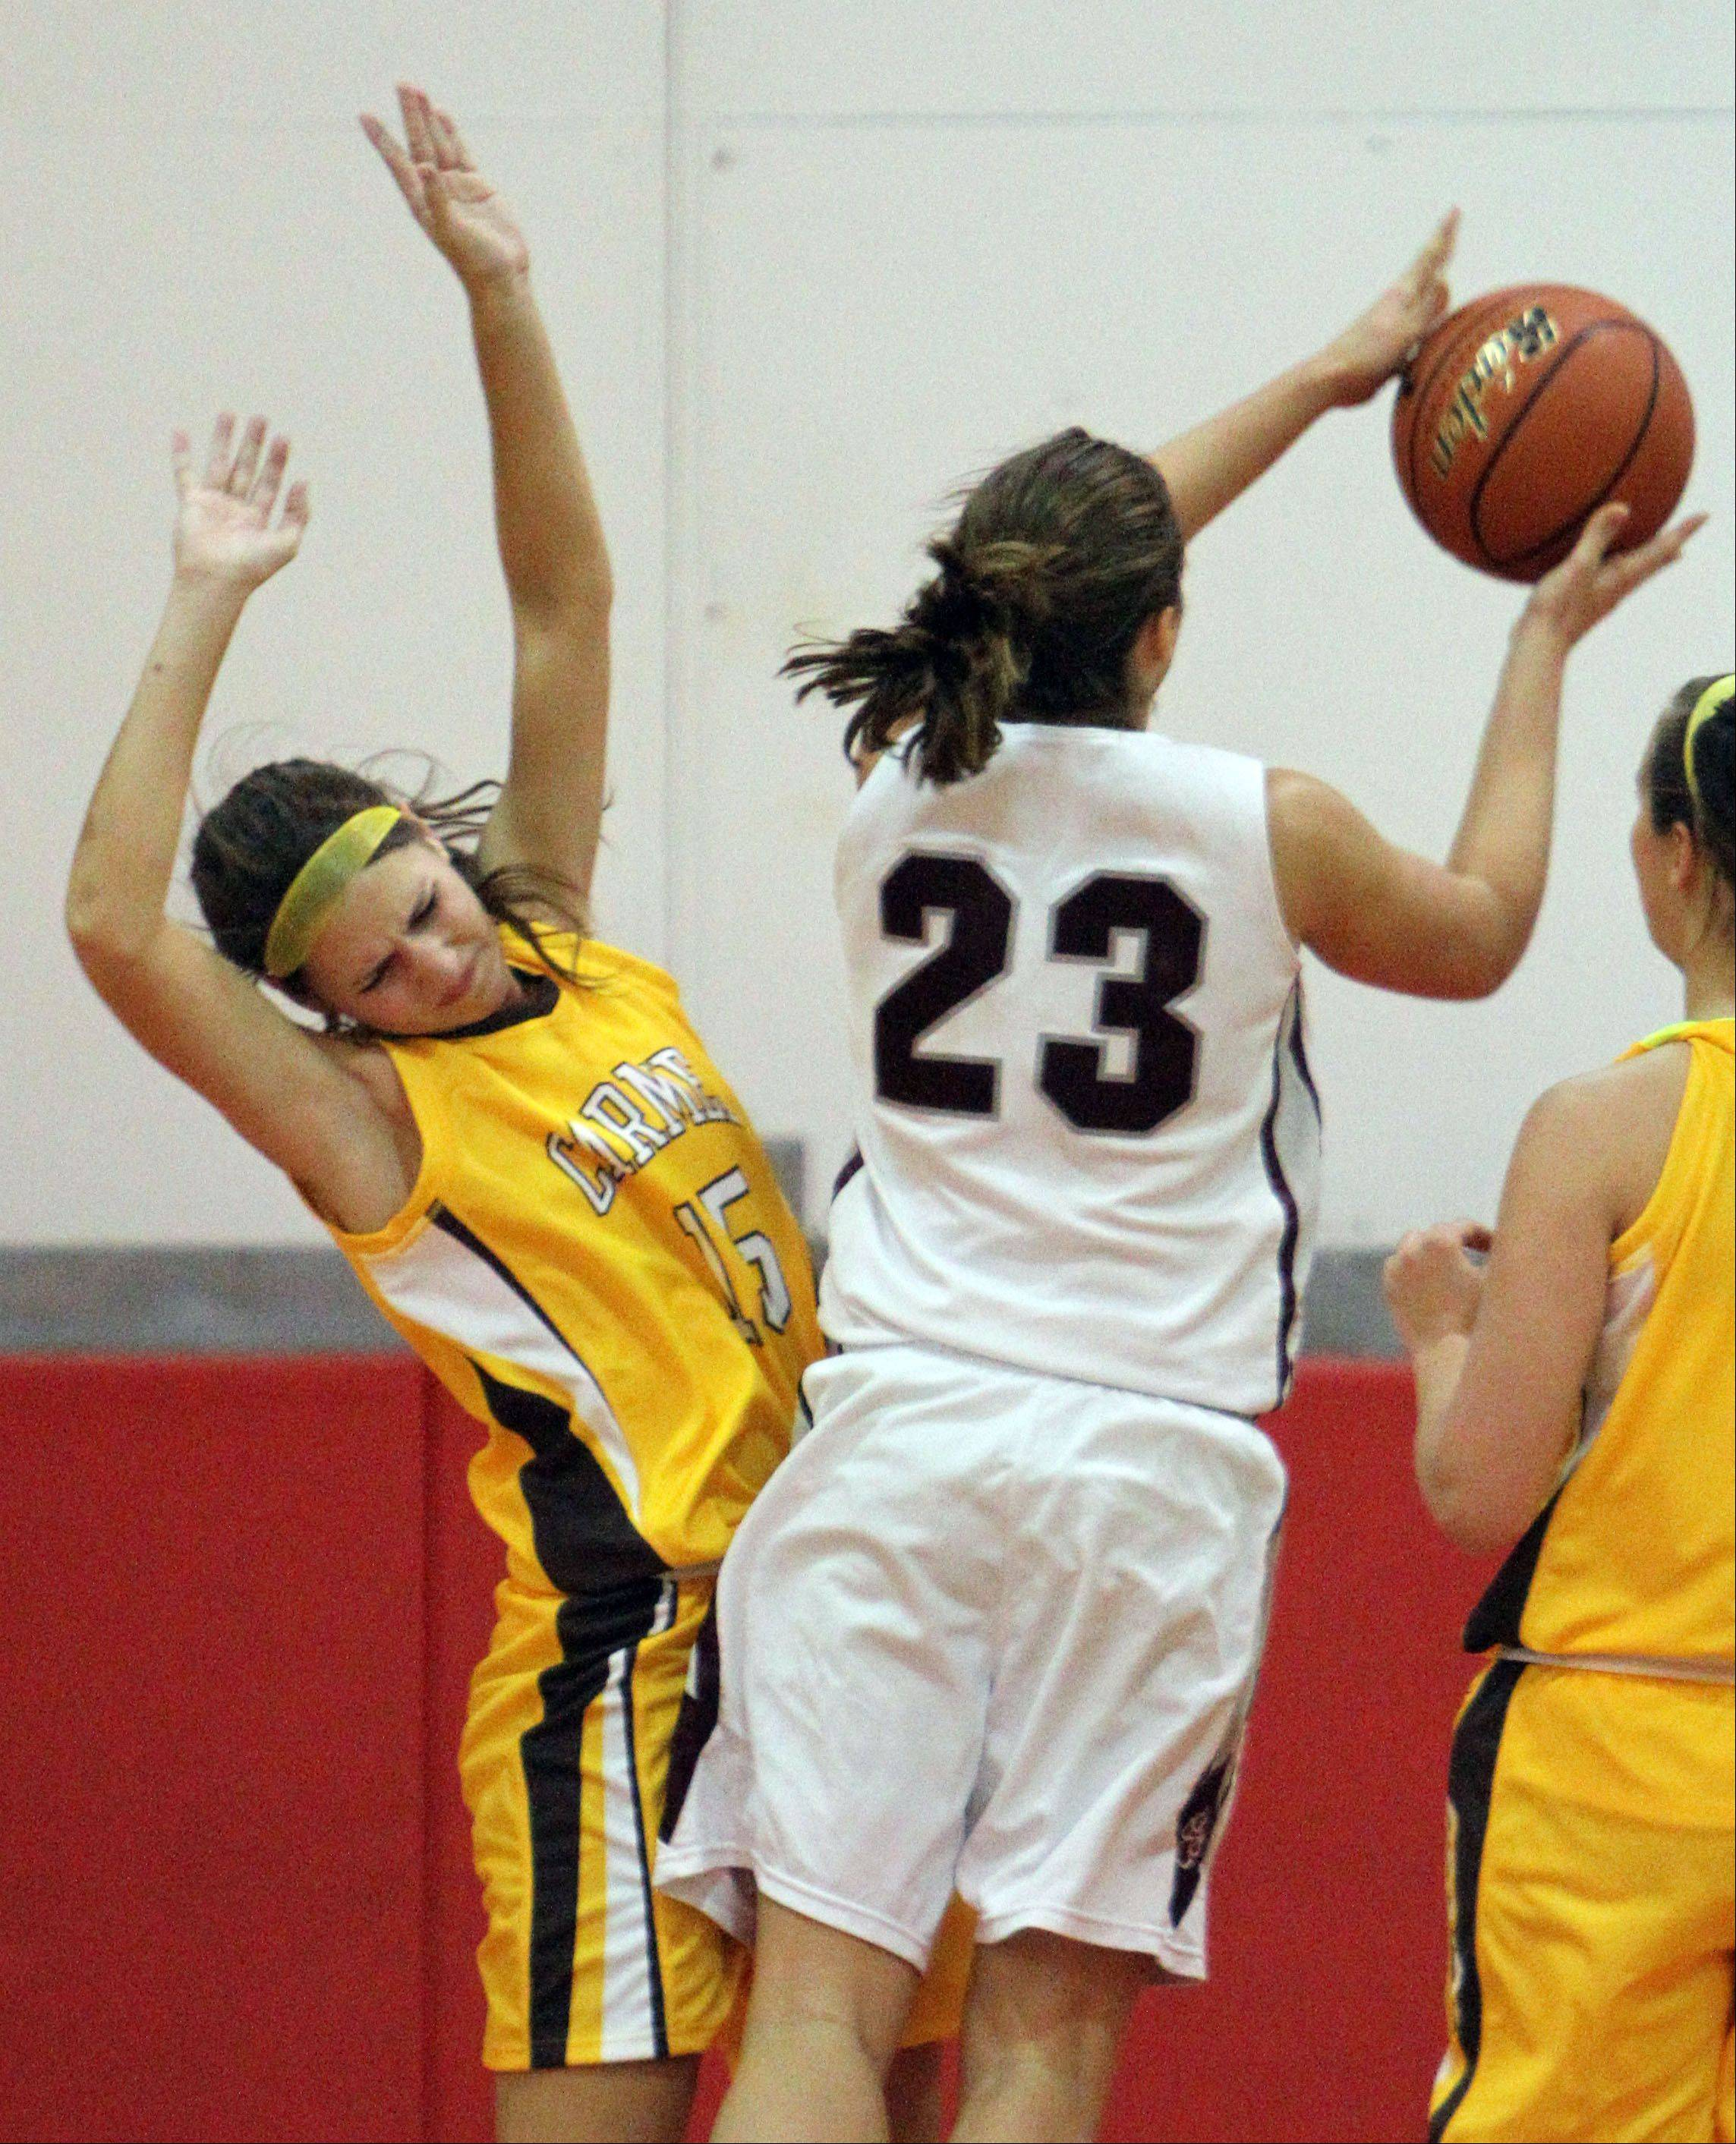 Prairie Ridge's Alex Neckopoulos, right, drives on Carmel's Paige Gauthier at the Mundelein Turkey Tournament on Monday.